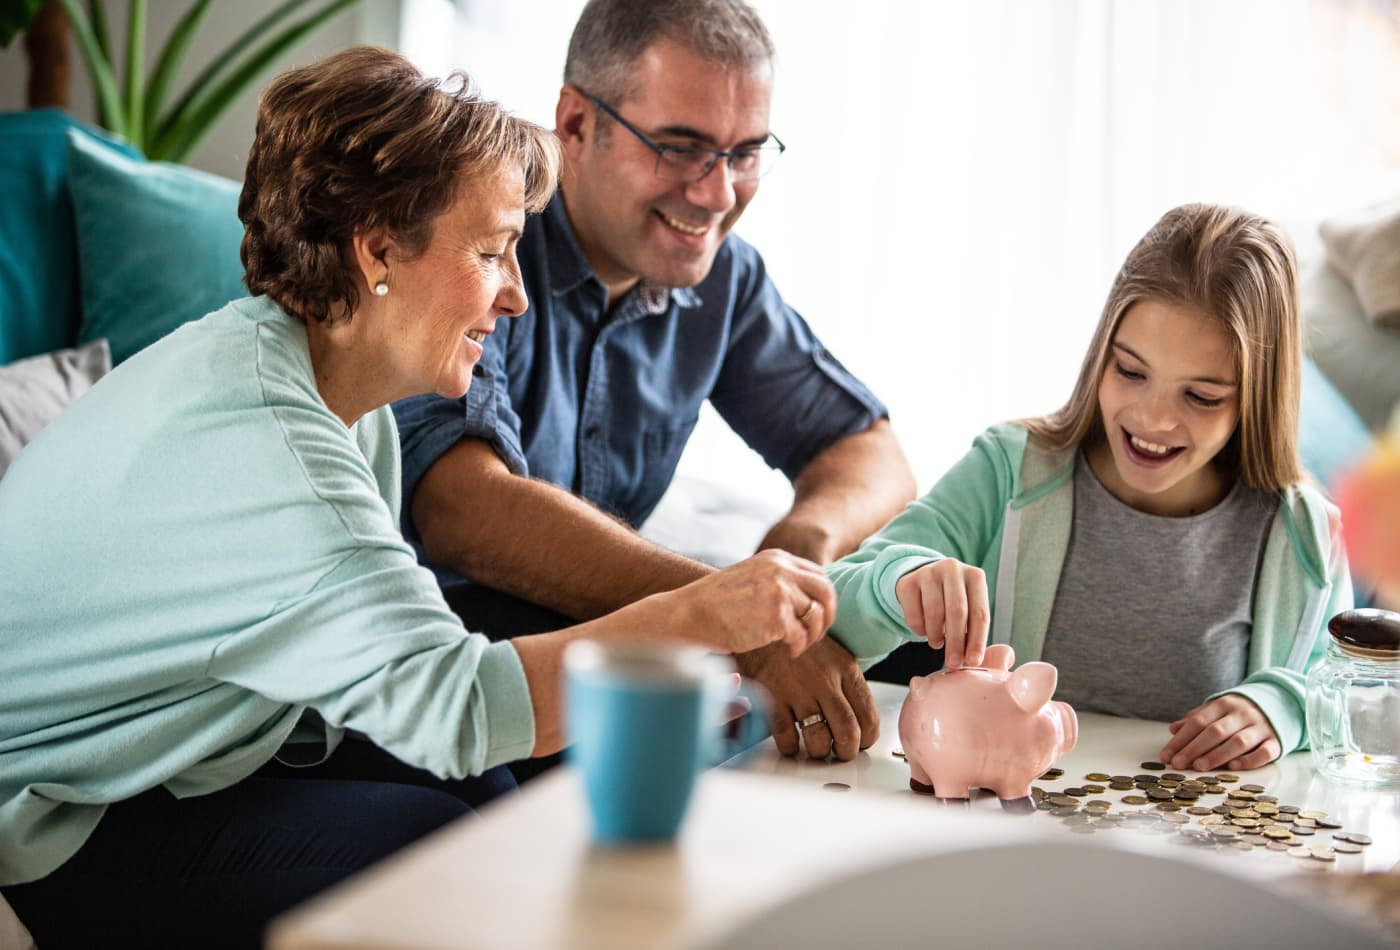 Do your teens understand money? Here are 10 tips to start the conversation